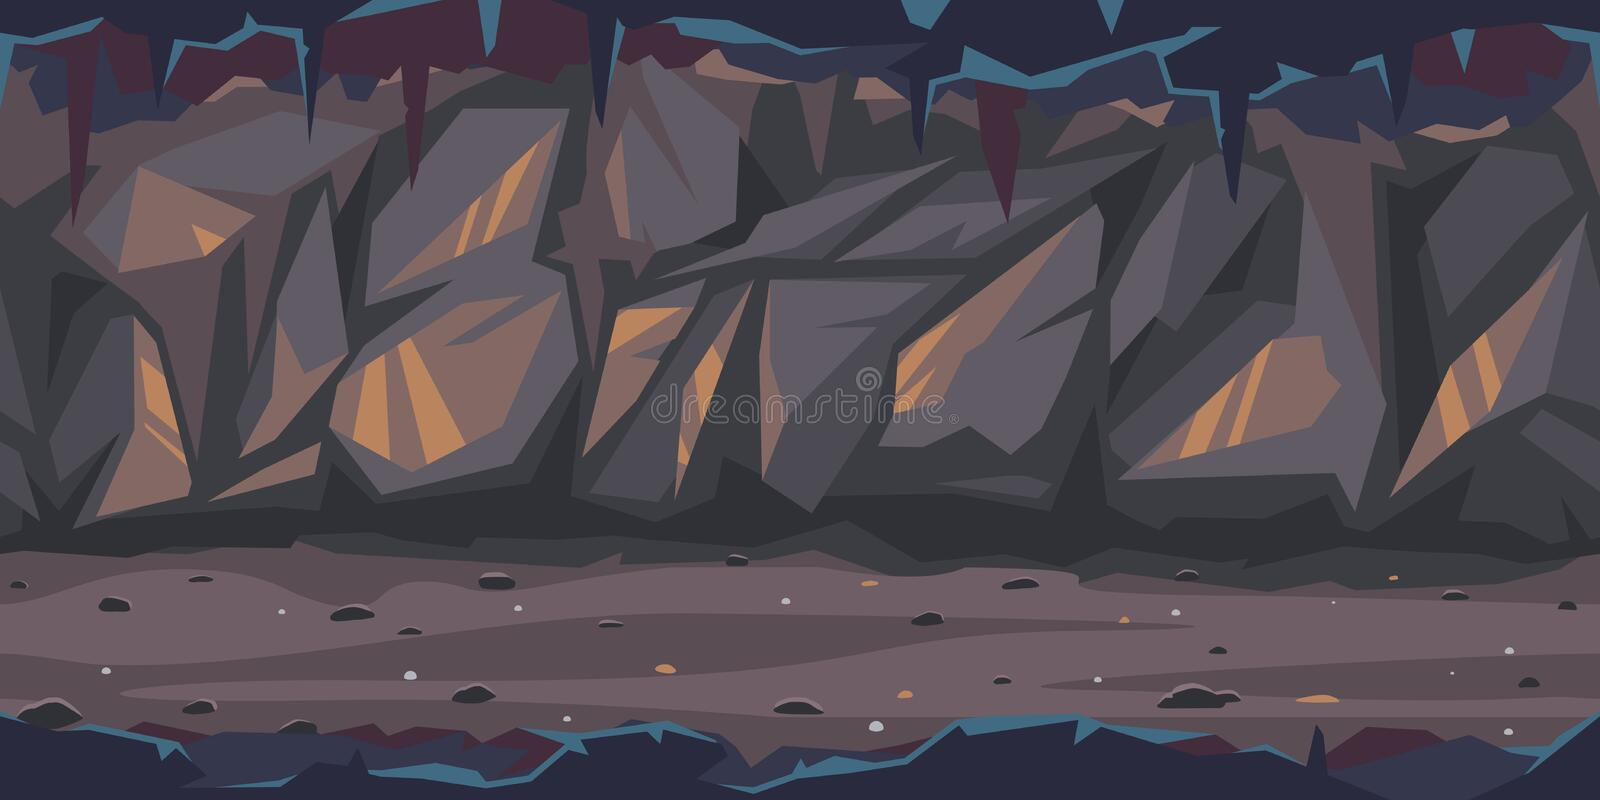 Dark terrible cave game illustration background. Path is crossing the dark cave game background tillable horizontally, dark terrible empty place with rock walls royalty free illustration